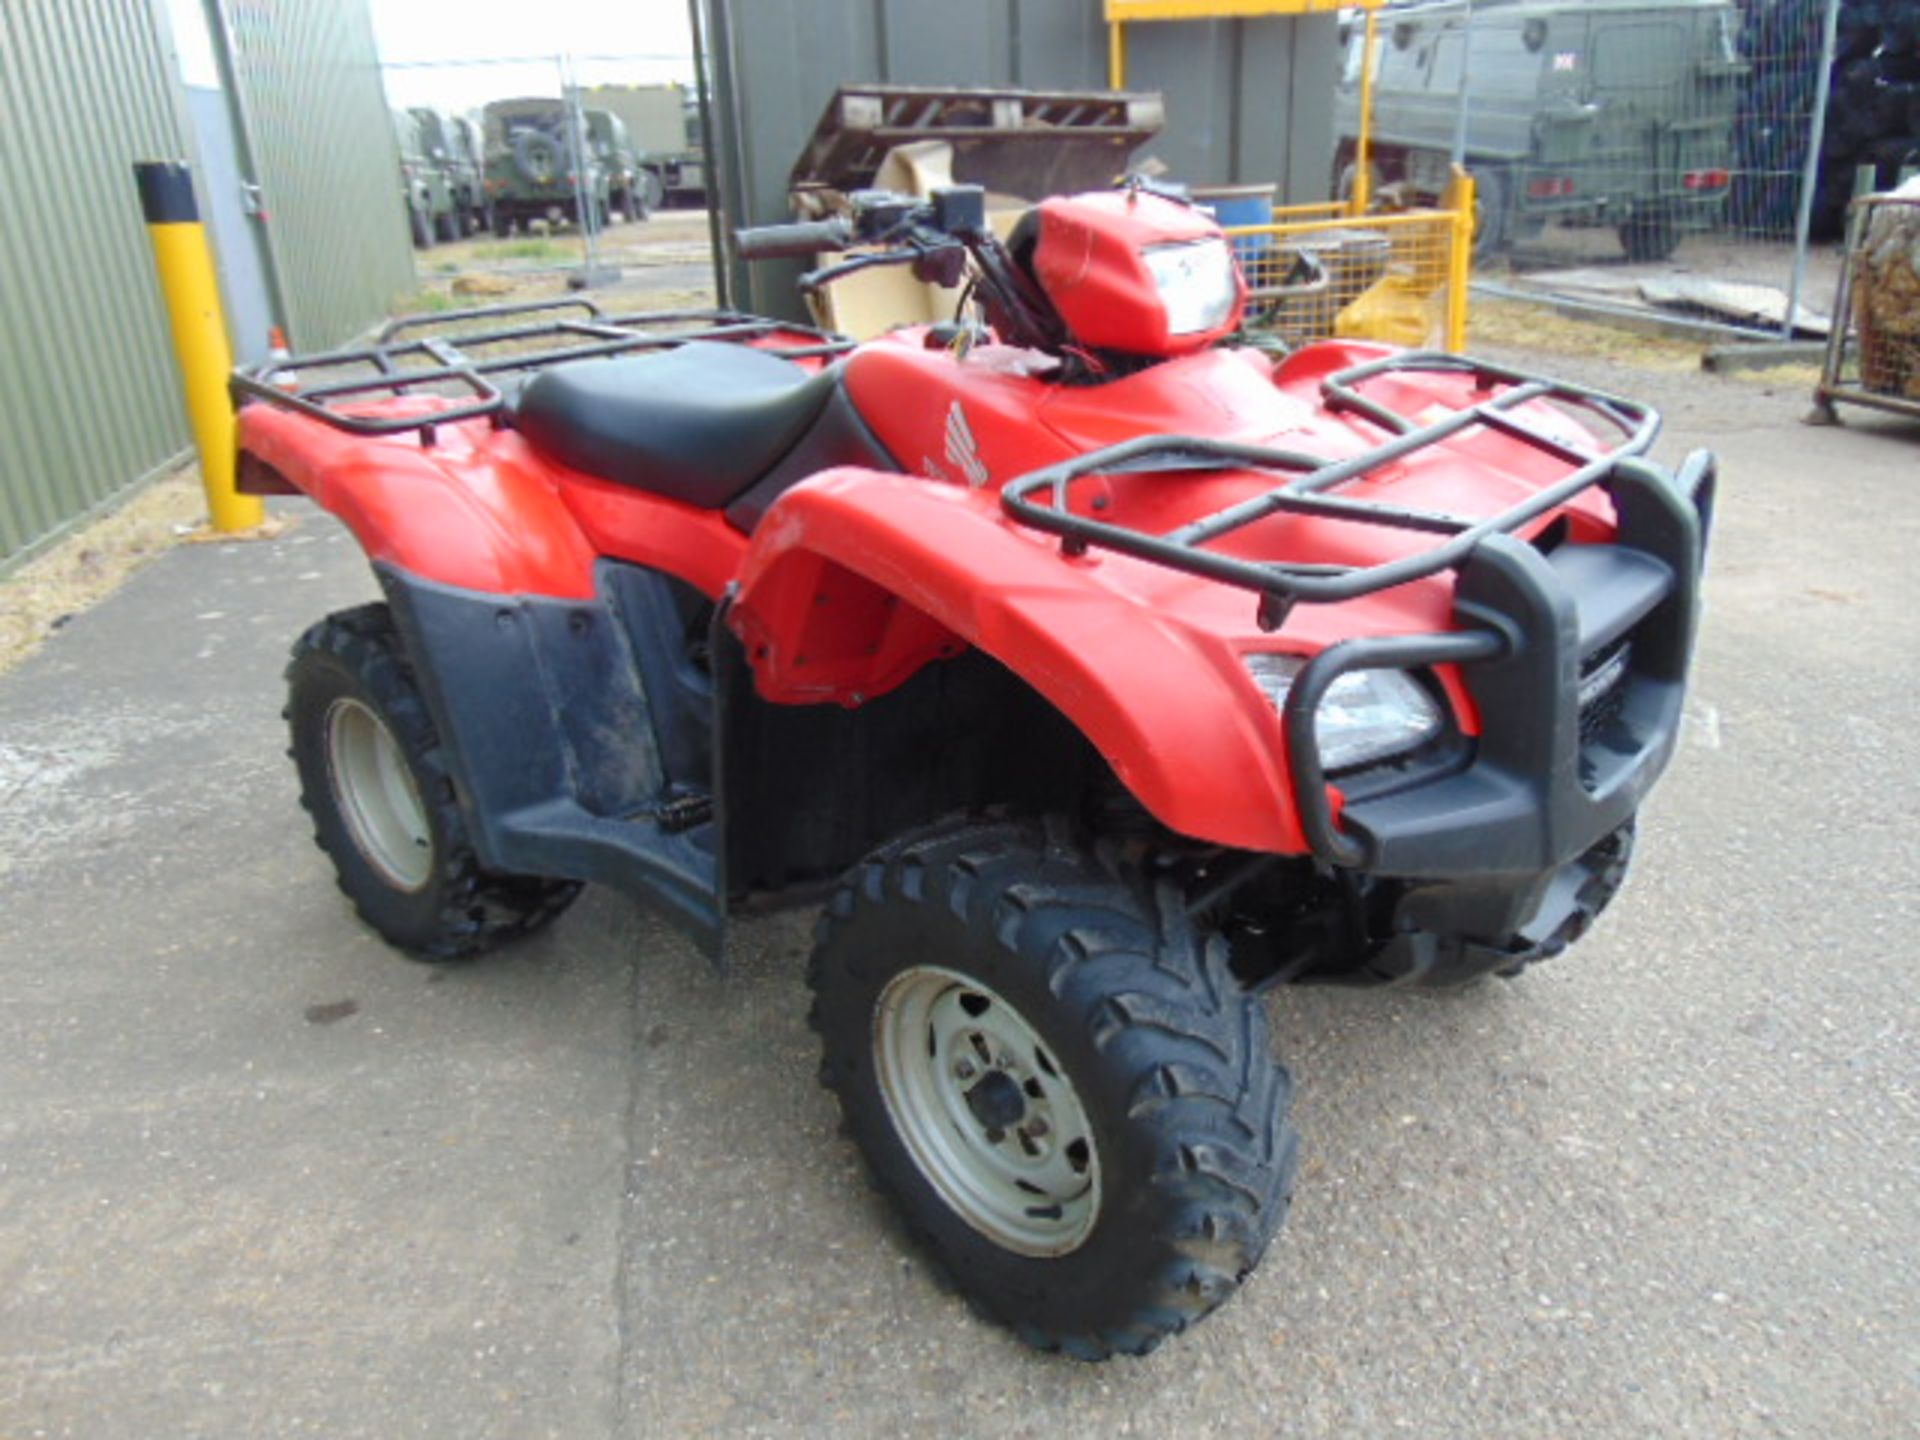 Honda TRX 500 4WD Quad Bike ONLY 2,300 HOURS! - Image 3 of 20